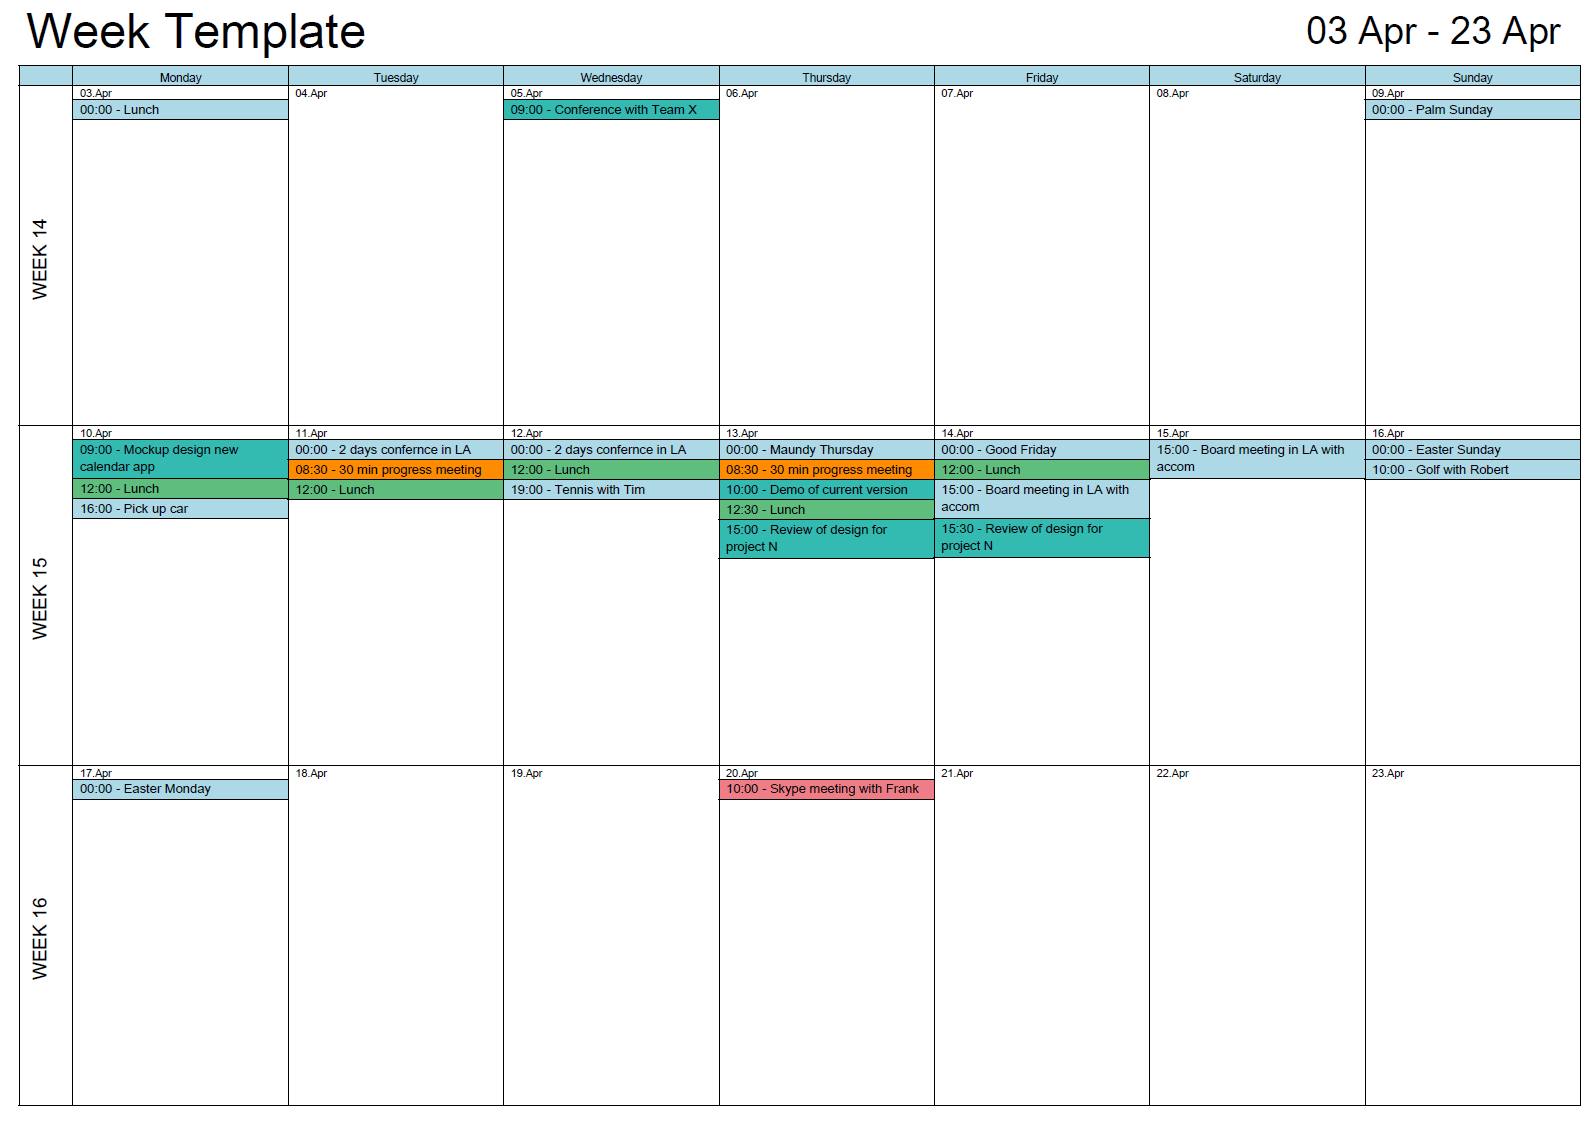 Outlook Printable Calendar In A4/a3 | Outlook Calendar Print with Outlook Calendar Template 5 Week